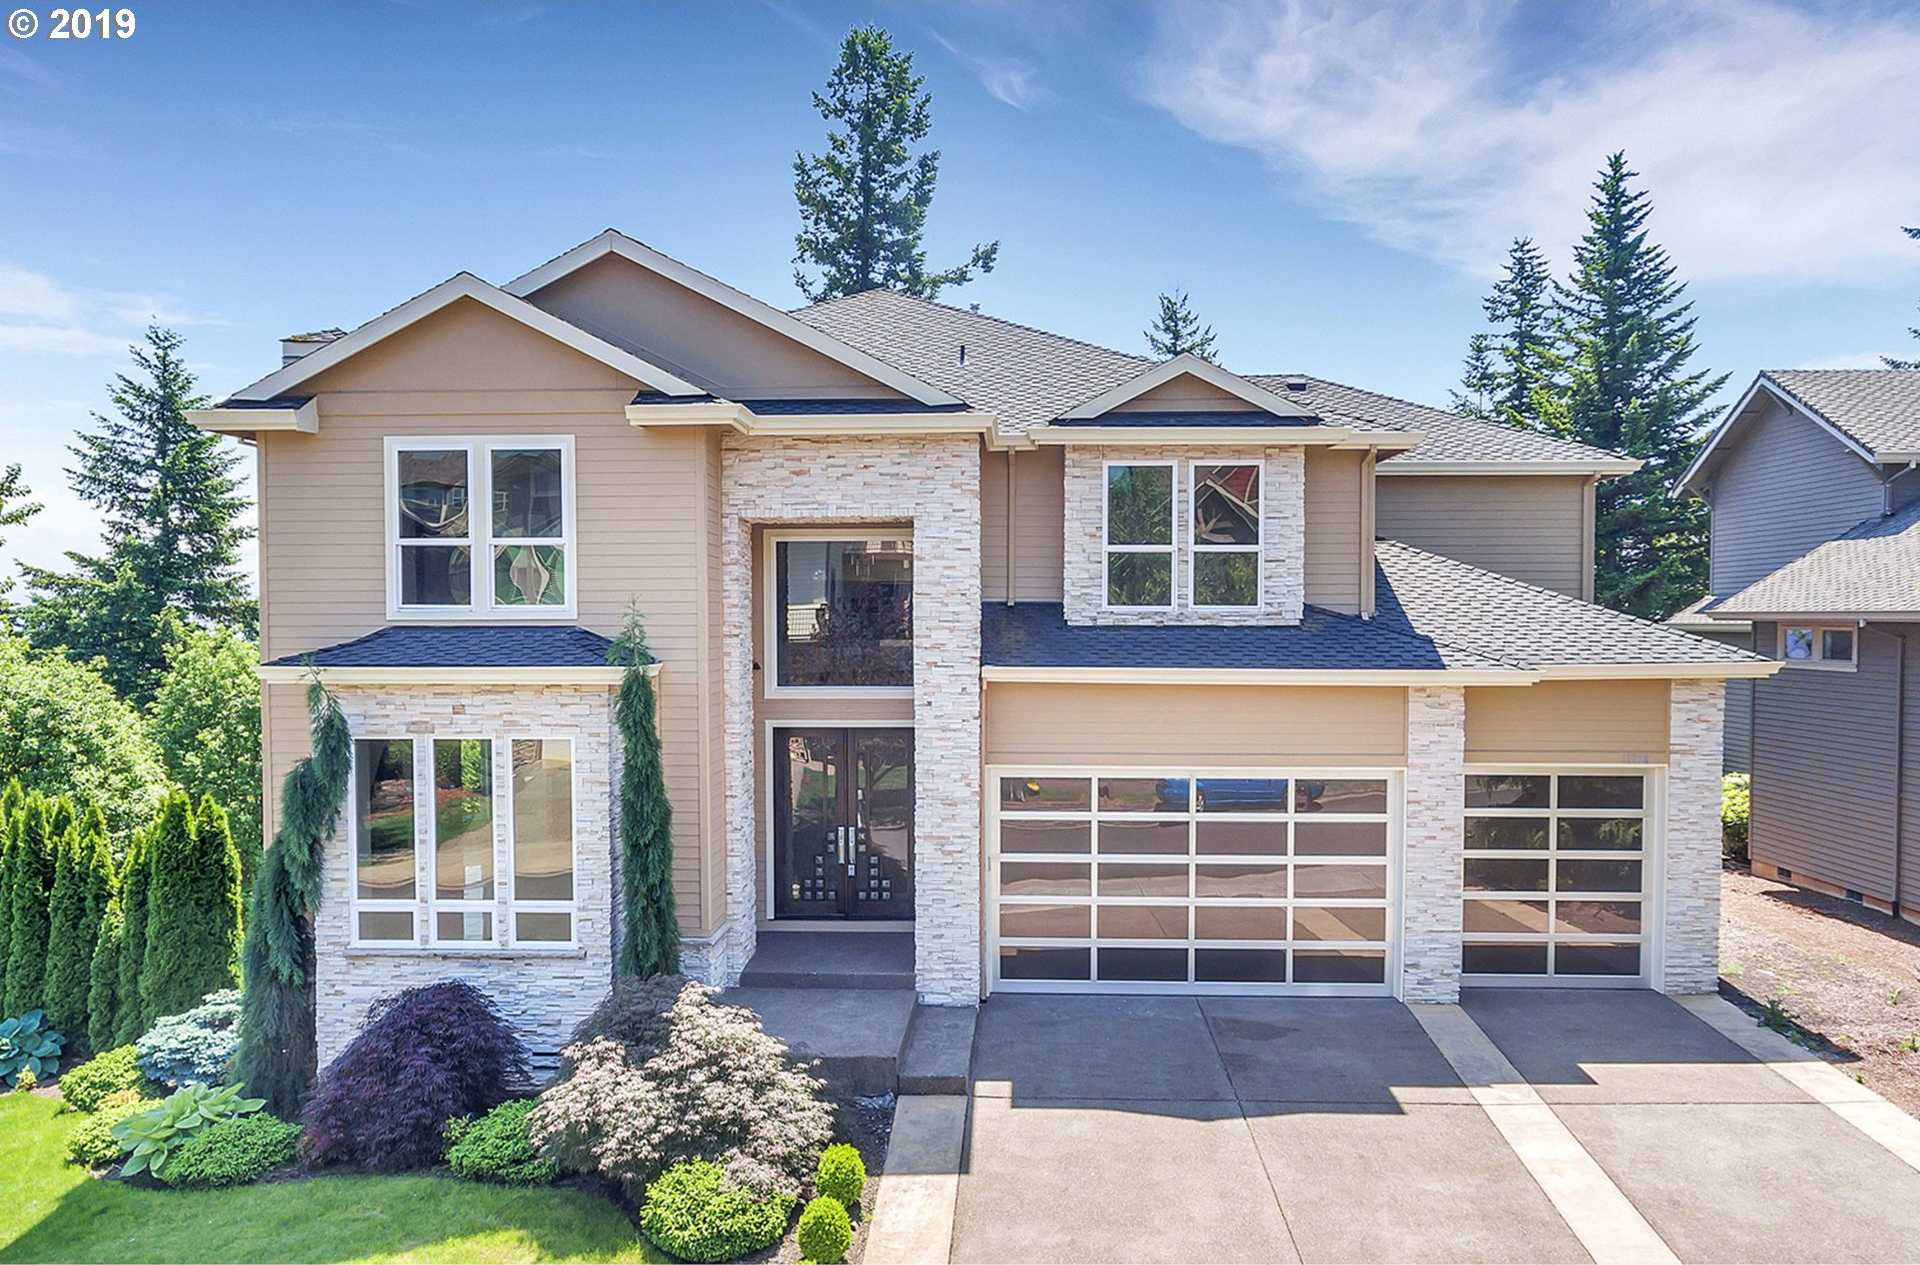 $1,099,999 - 5Br/5Ba -  for Sale in Greyhawk Ridge, Happy Valley